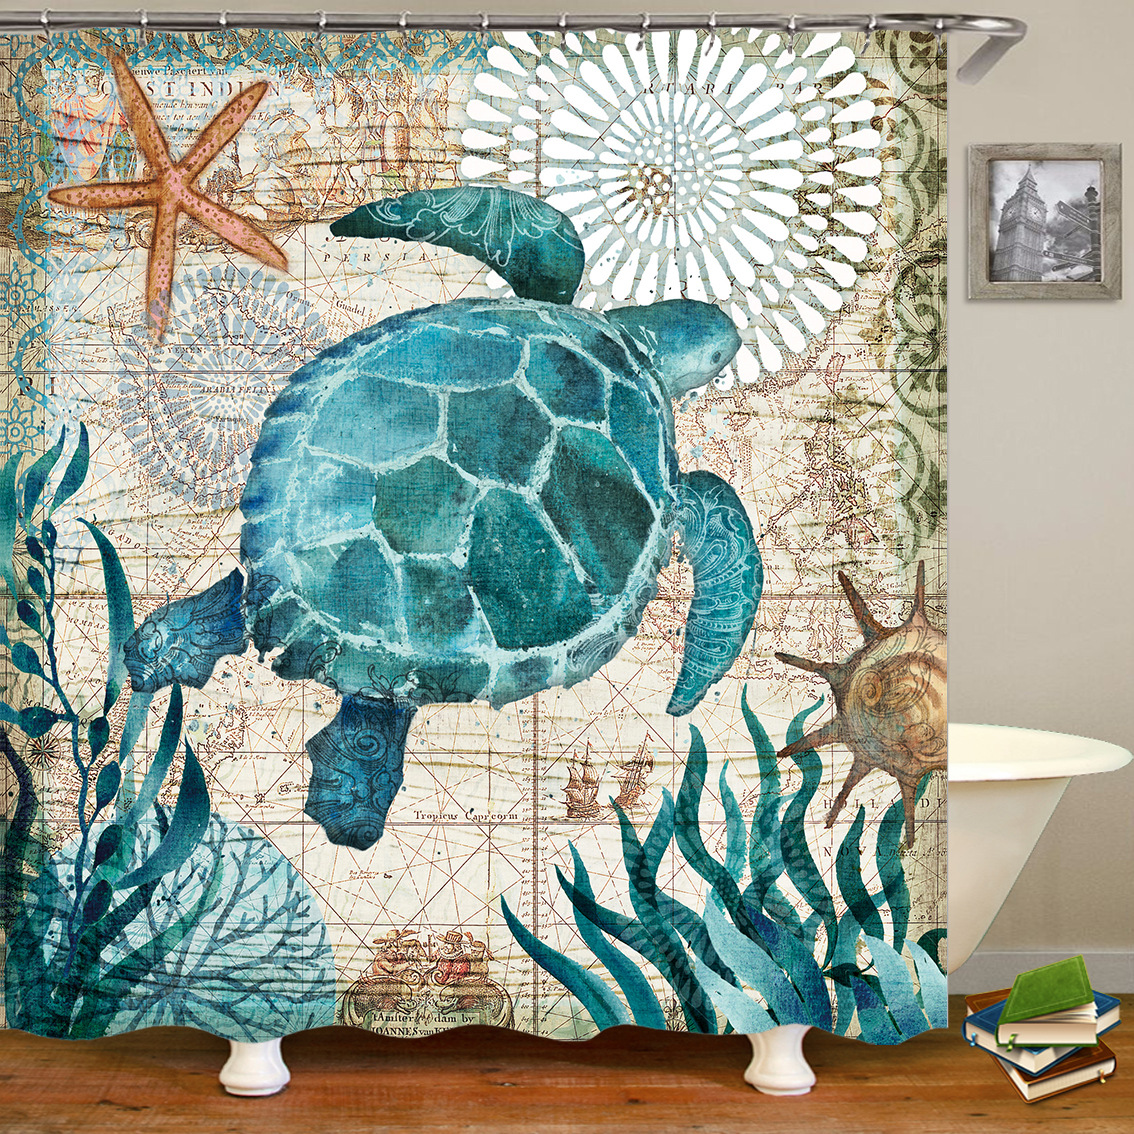 Ocean Animals Waterproof Polyester Digital Printing Thickened Non-toxic Mildew Shower Curtain